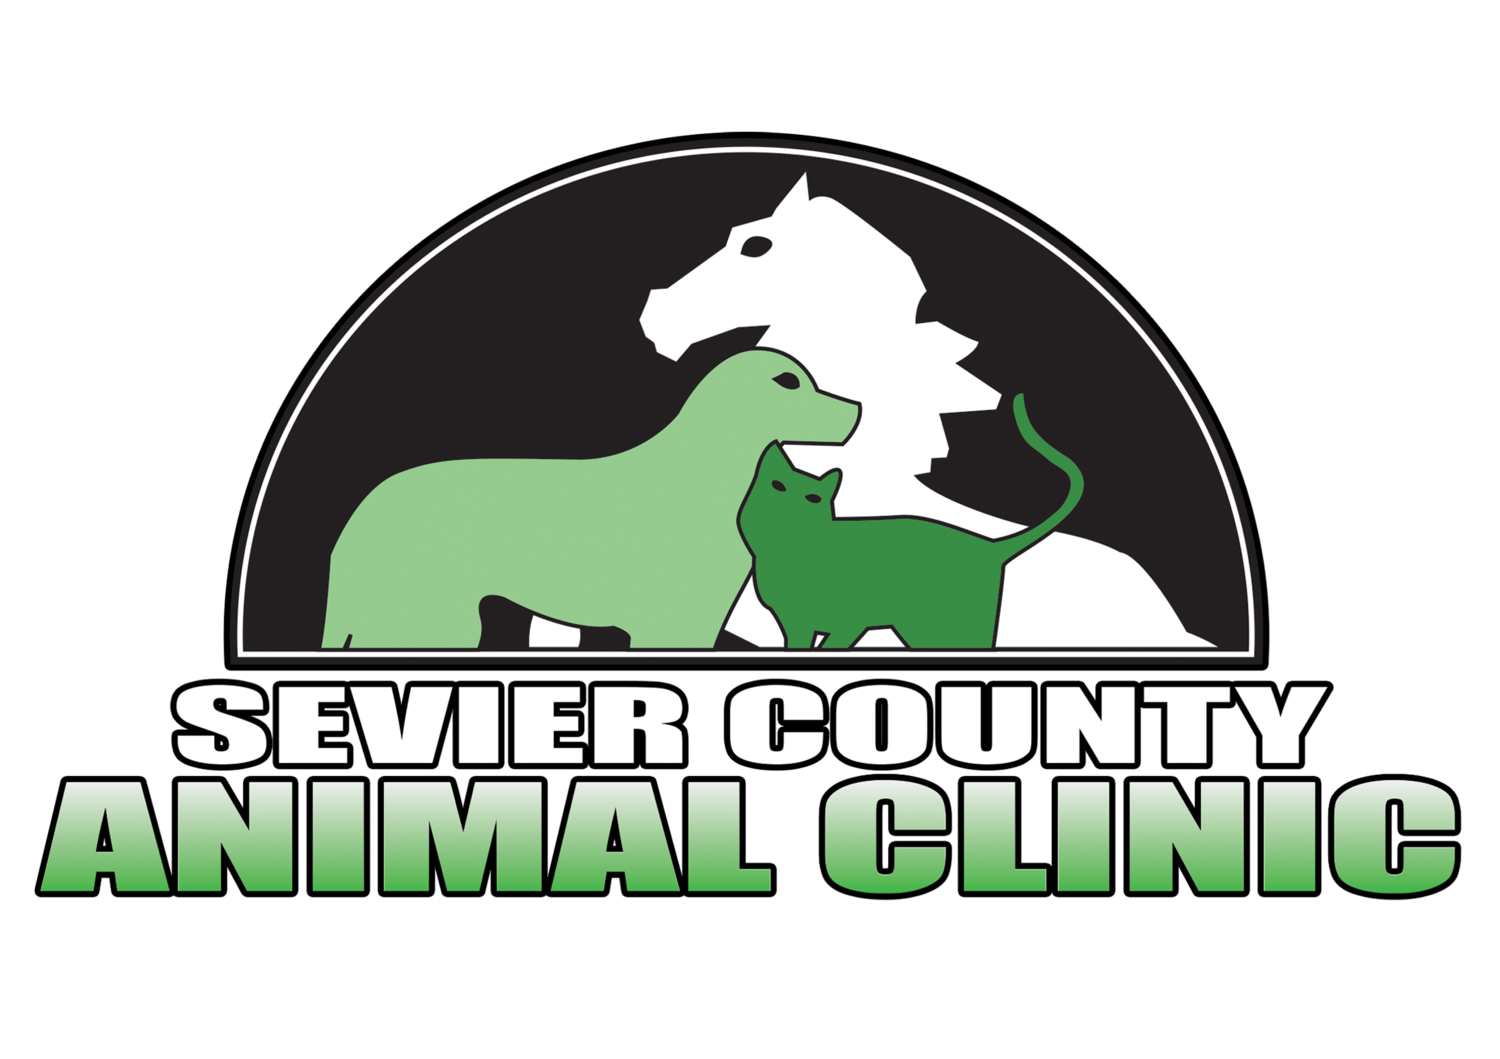 Sevier County Animal Clinic